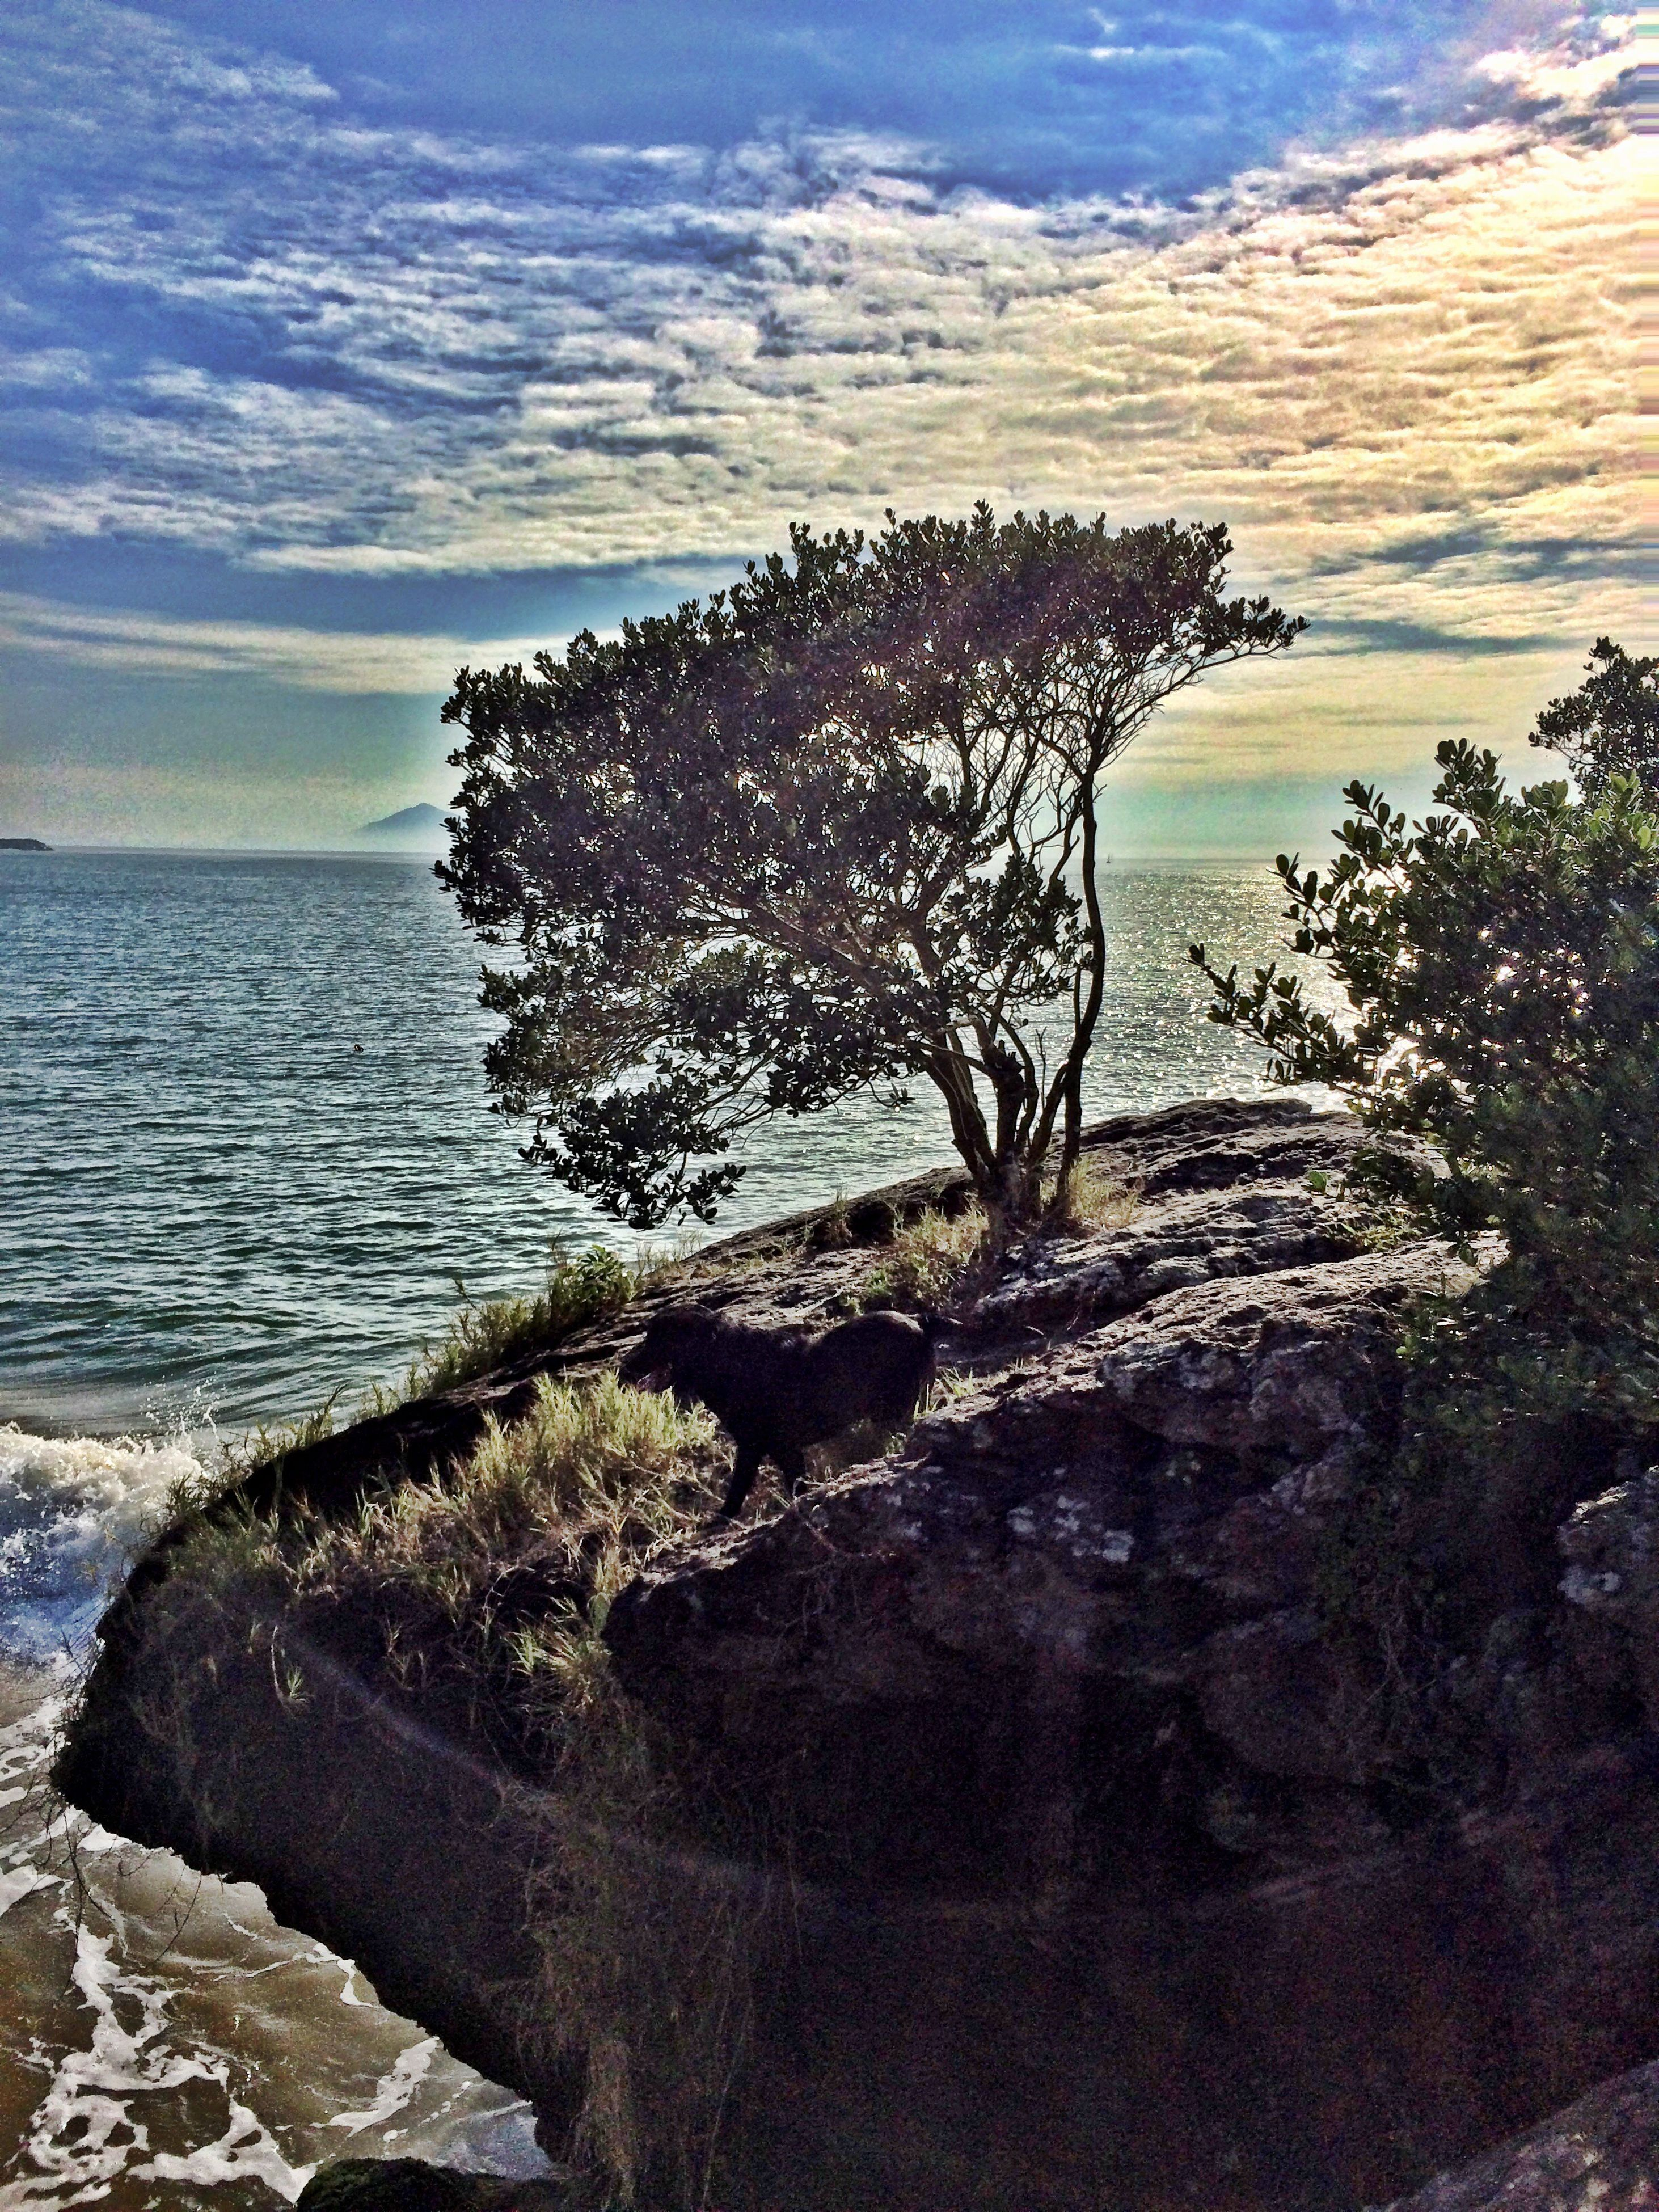 water, sea, tranquility, tranquil scene, beauty in nature, scenics, nature, sky, rock - object, horizon over water, idyllic, day, growth, rippled, outdoors, no people, remote, non-urban scene, plant, rock formation, cloud - sky, non urban scene, cloud